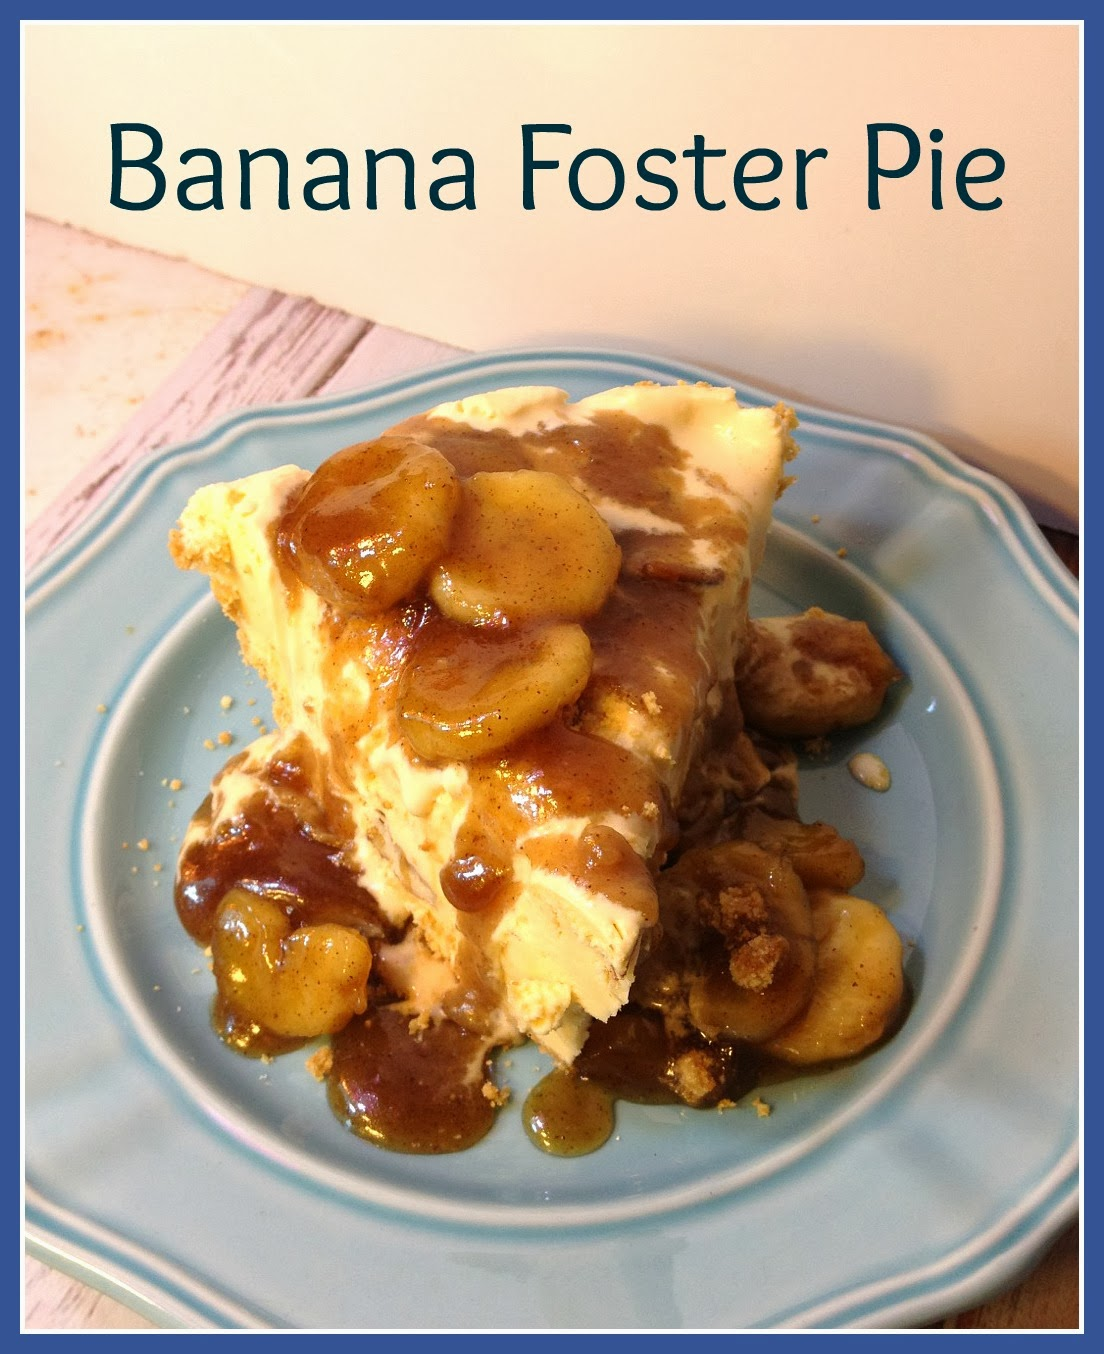 Banana Foster Pie for the Cook Book Club